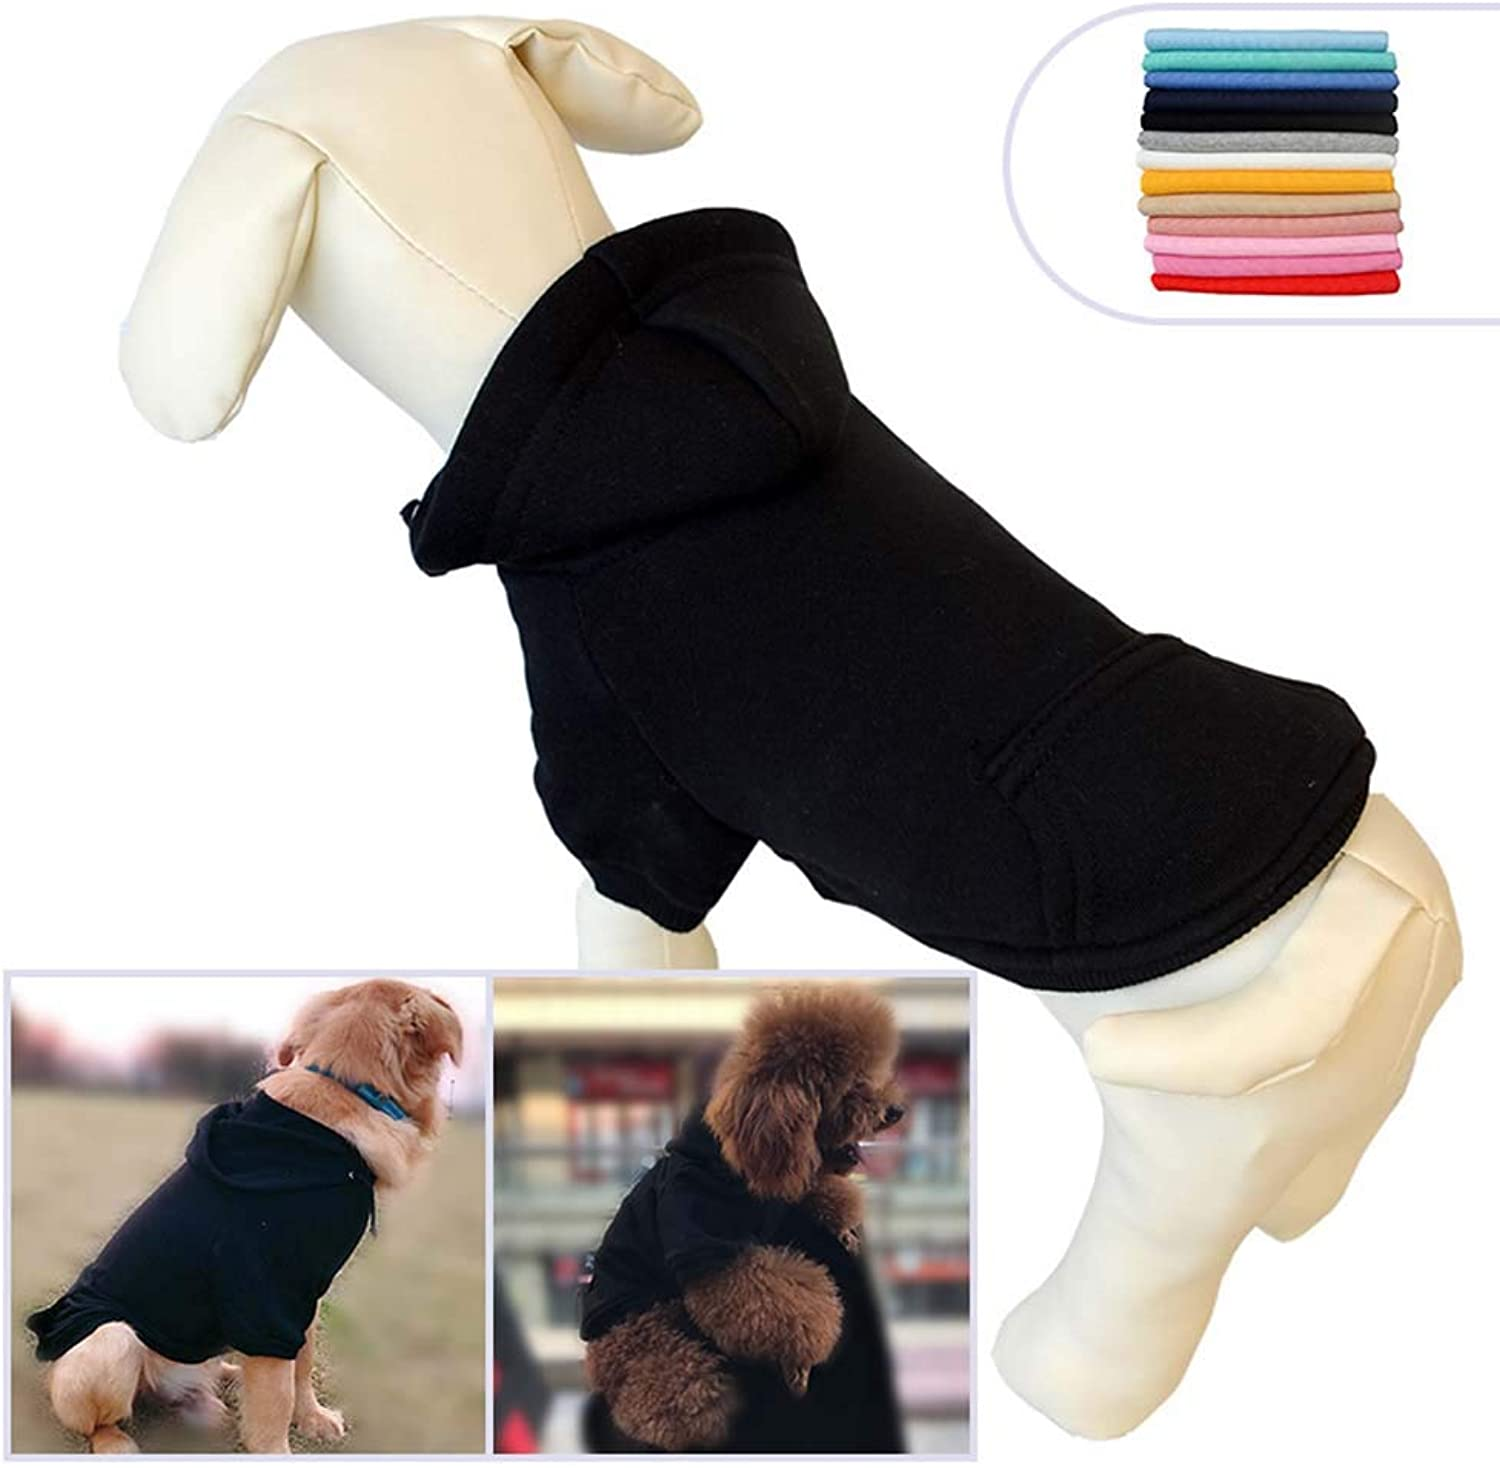 Pet Clothing Clothes Dog Coat Hoodies Winter Autumn Sweatshirt for Small Middle Large Size Dogs 11 colors 100% Cotton 2018 New (S, Black)